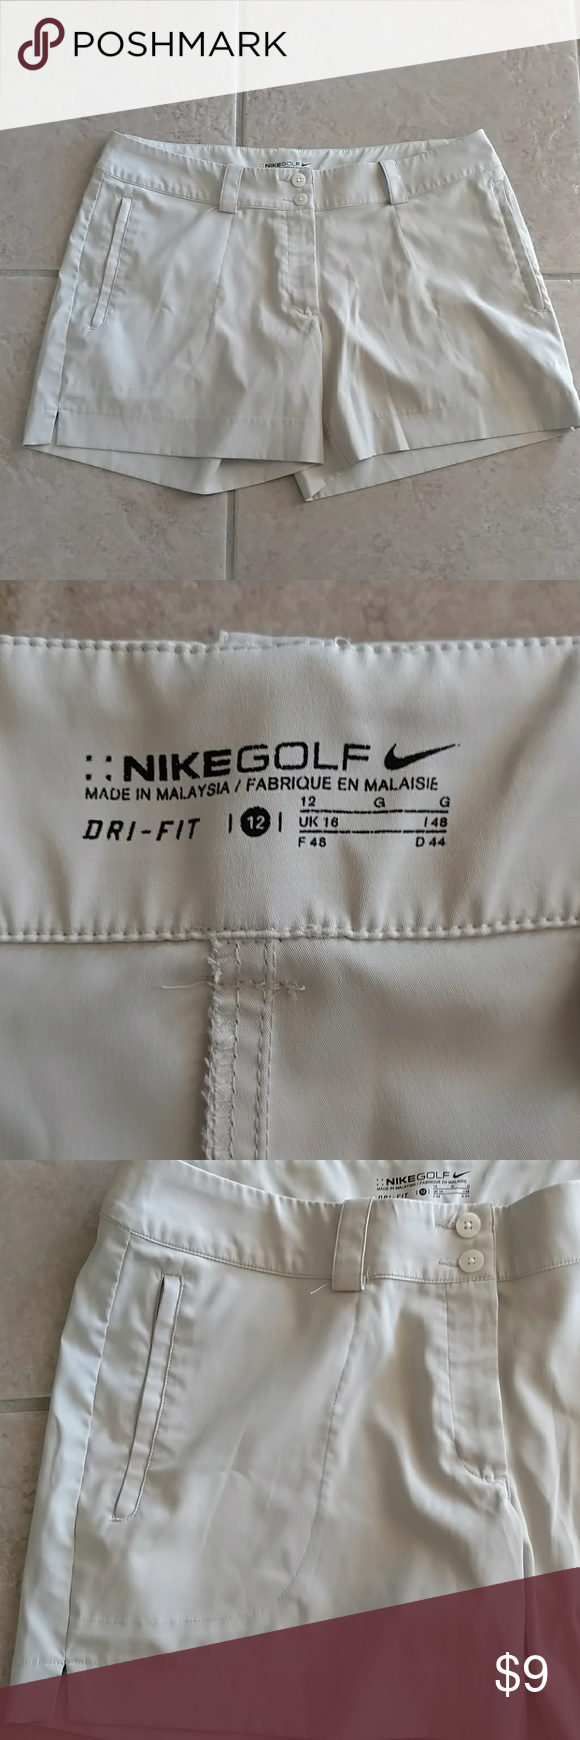 Nike Golf Tan Dri-fit Shorts Size 12 Nike Golf in a Light Tan Dri-fit Shorts Size 12. Great shape. Lost weight and too big now. Smoke free home. Nike Shorts